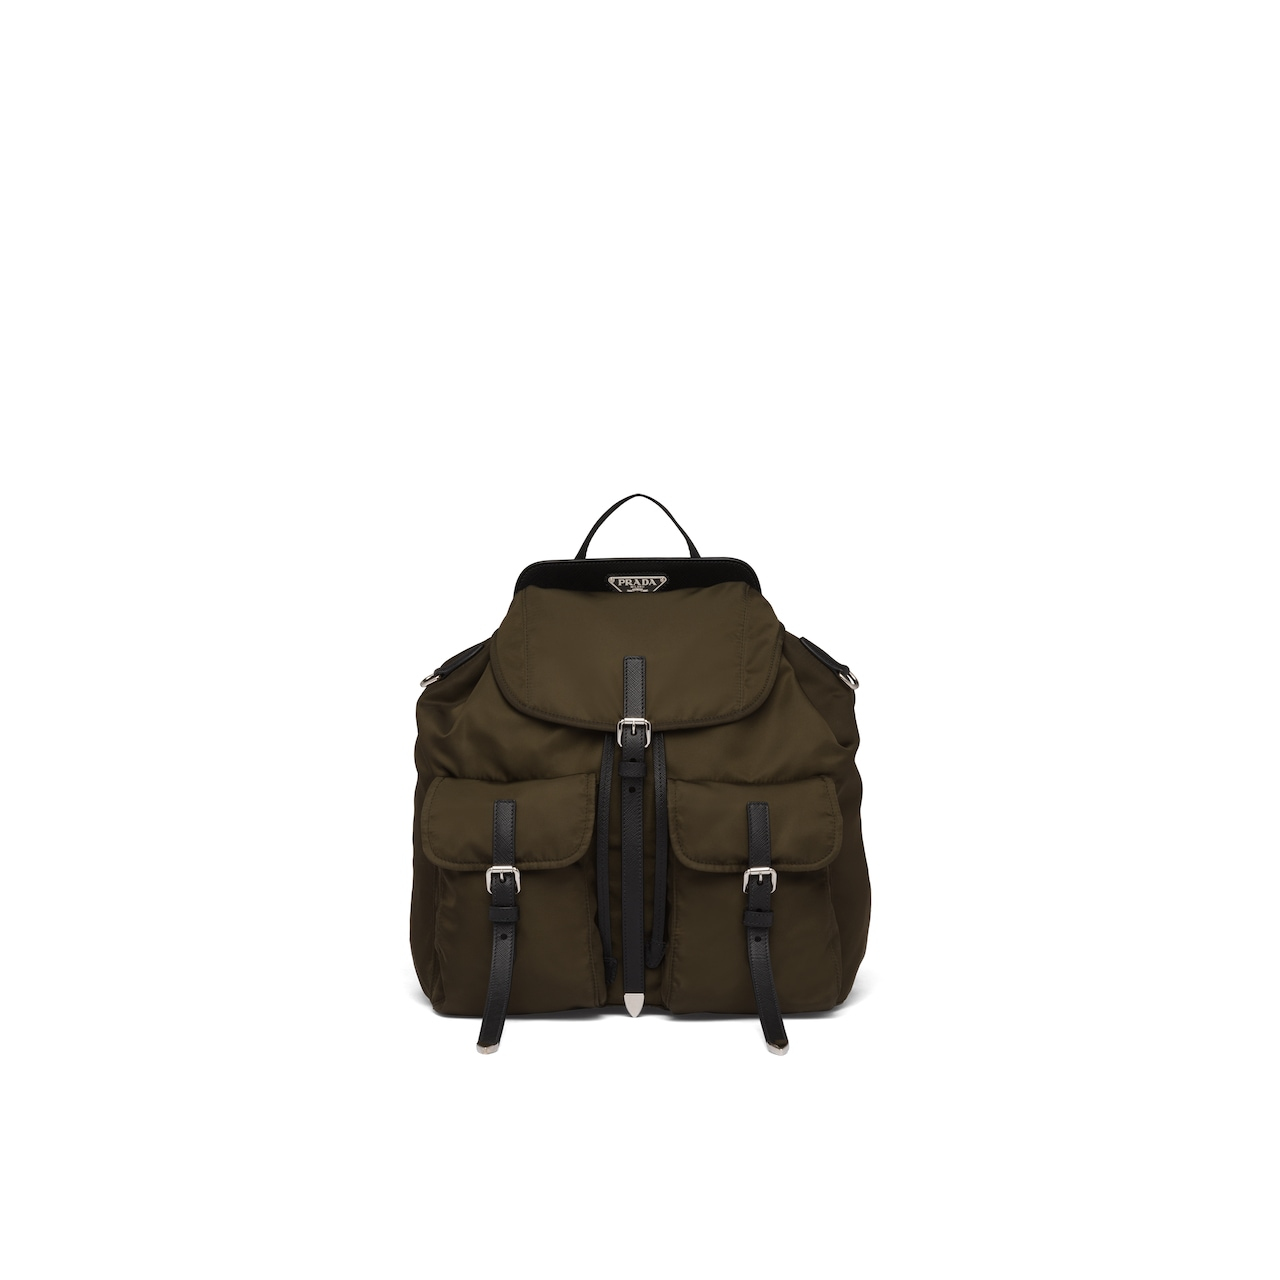 Prada Nylon and Saffiano leather backpack 1